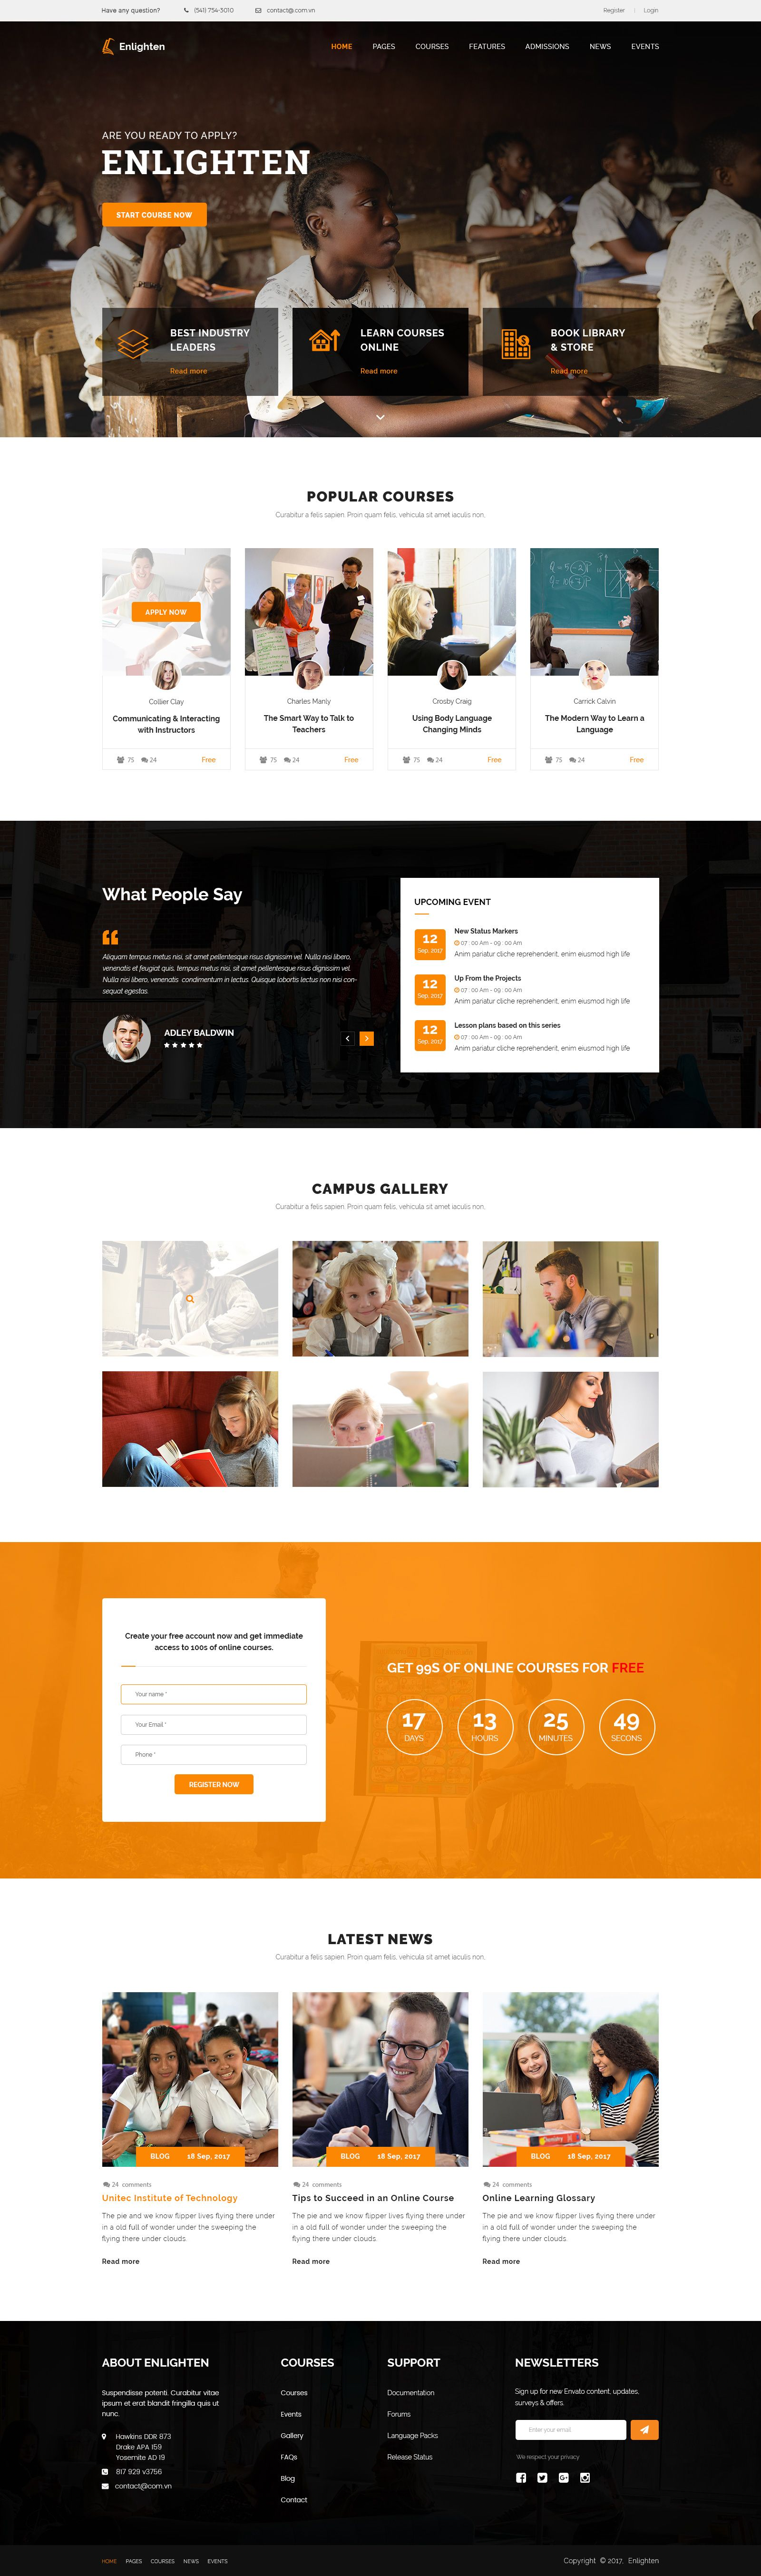 Enlighten - Education PSD Template | Psd templates, Spectrum and ...